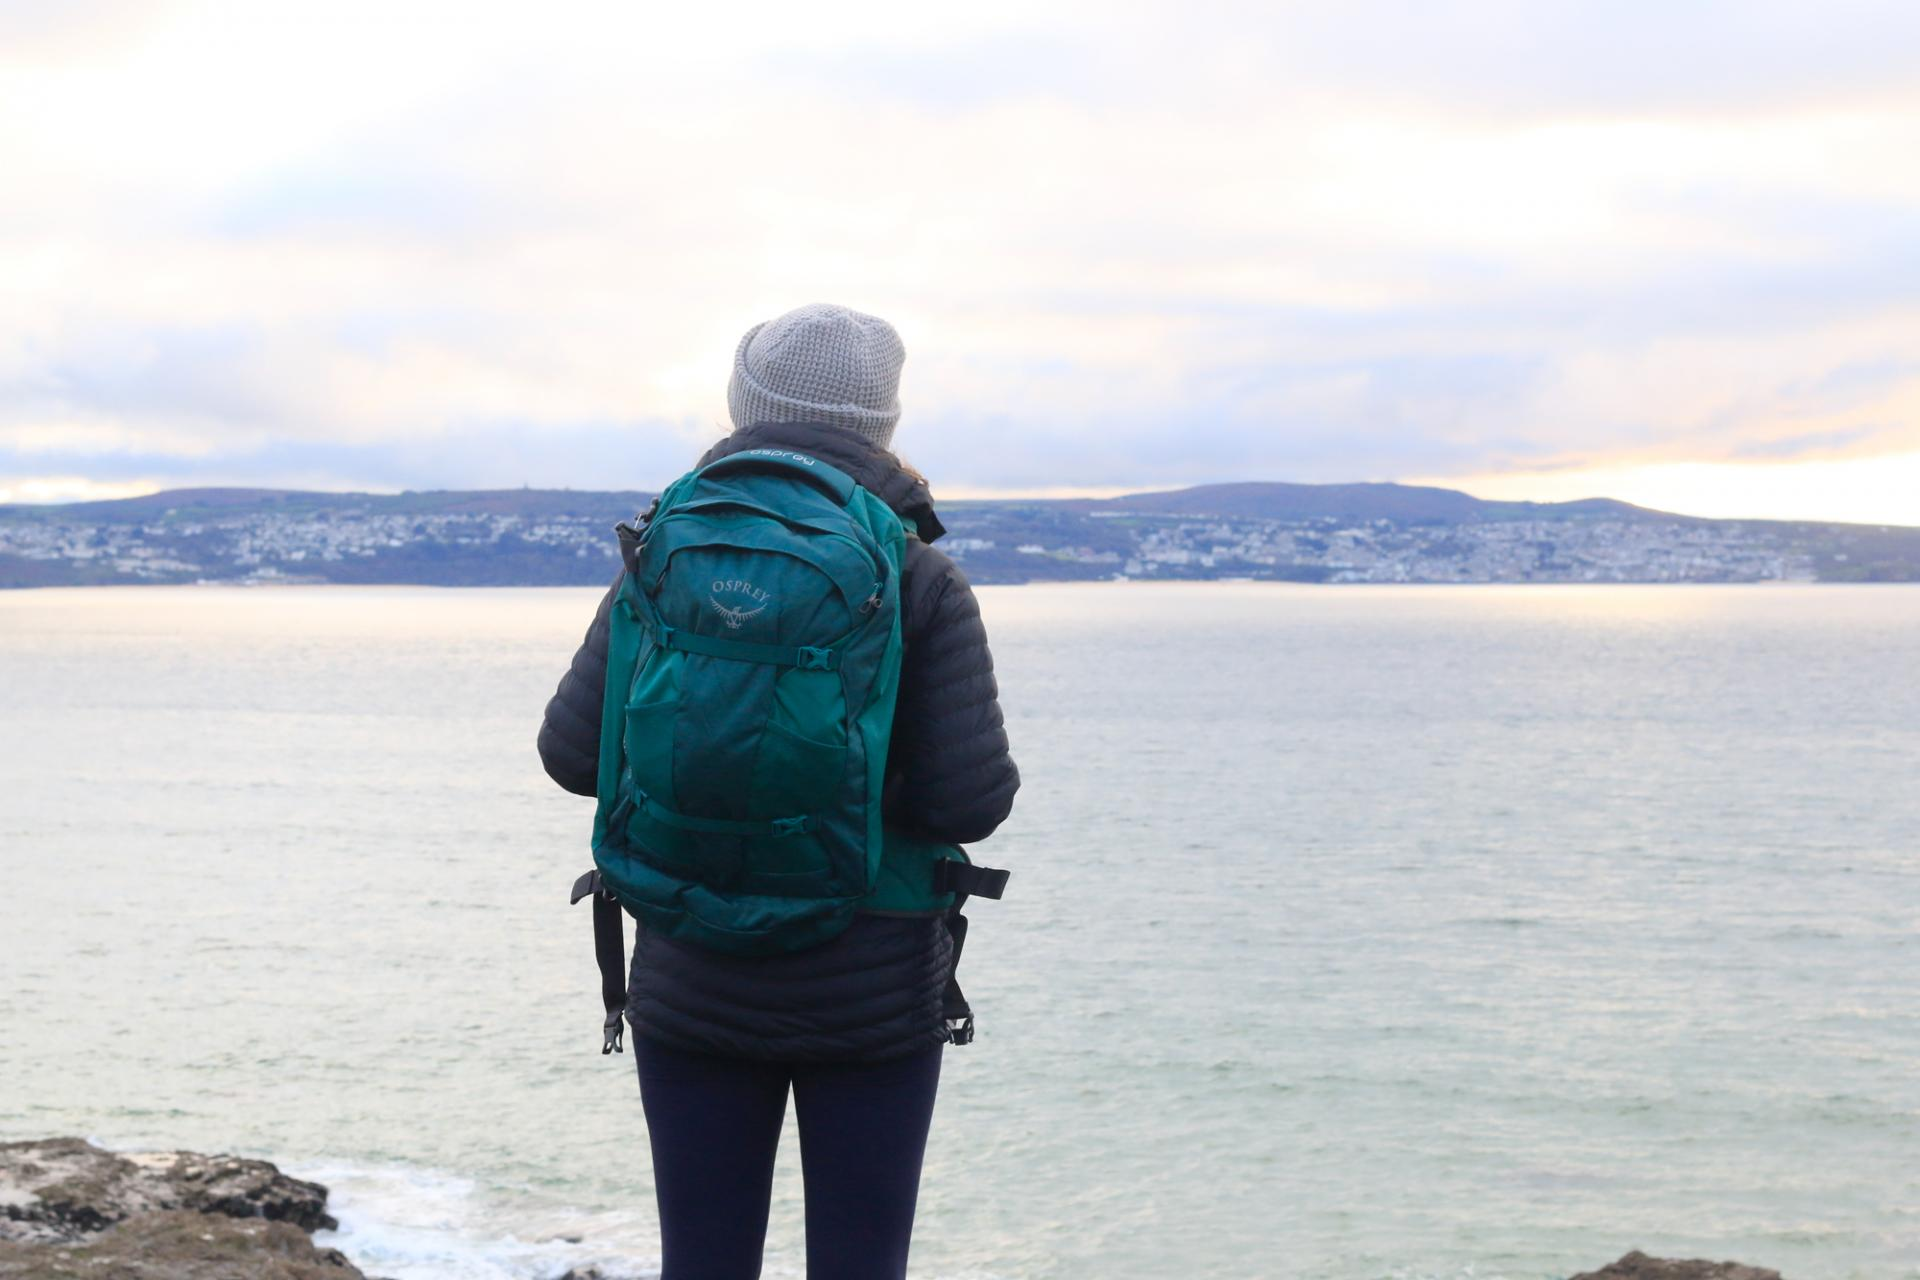 Gear profile – the new Osprey Fairview carry-on bag